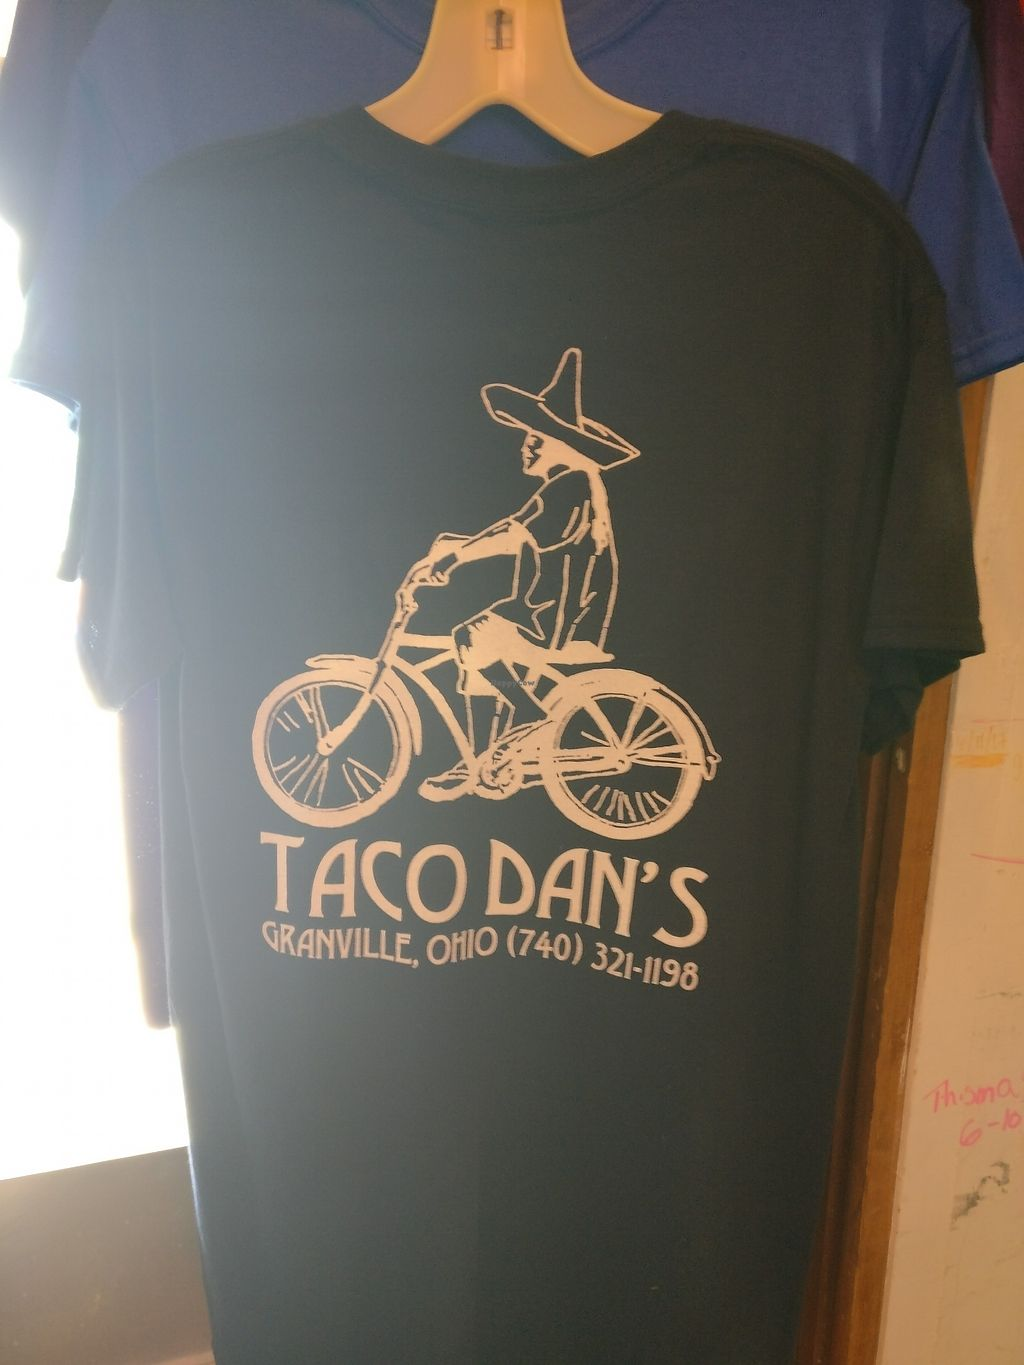 """Photo of Taco Dans  by <a href=""""/members/profile/Nogd"""">Nogd</a> <br/>love the shirts <br/> July 7, 2017  - <a href='/contact/abuse/image/35692/277605'>Report</a>"""